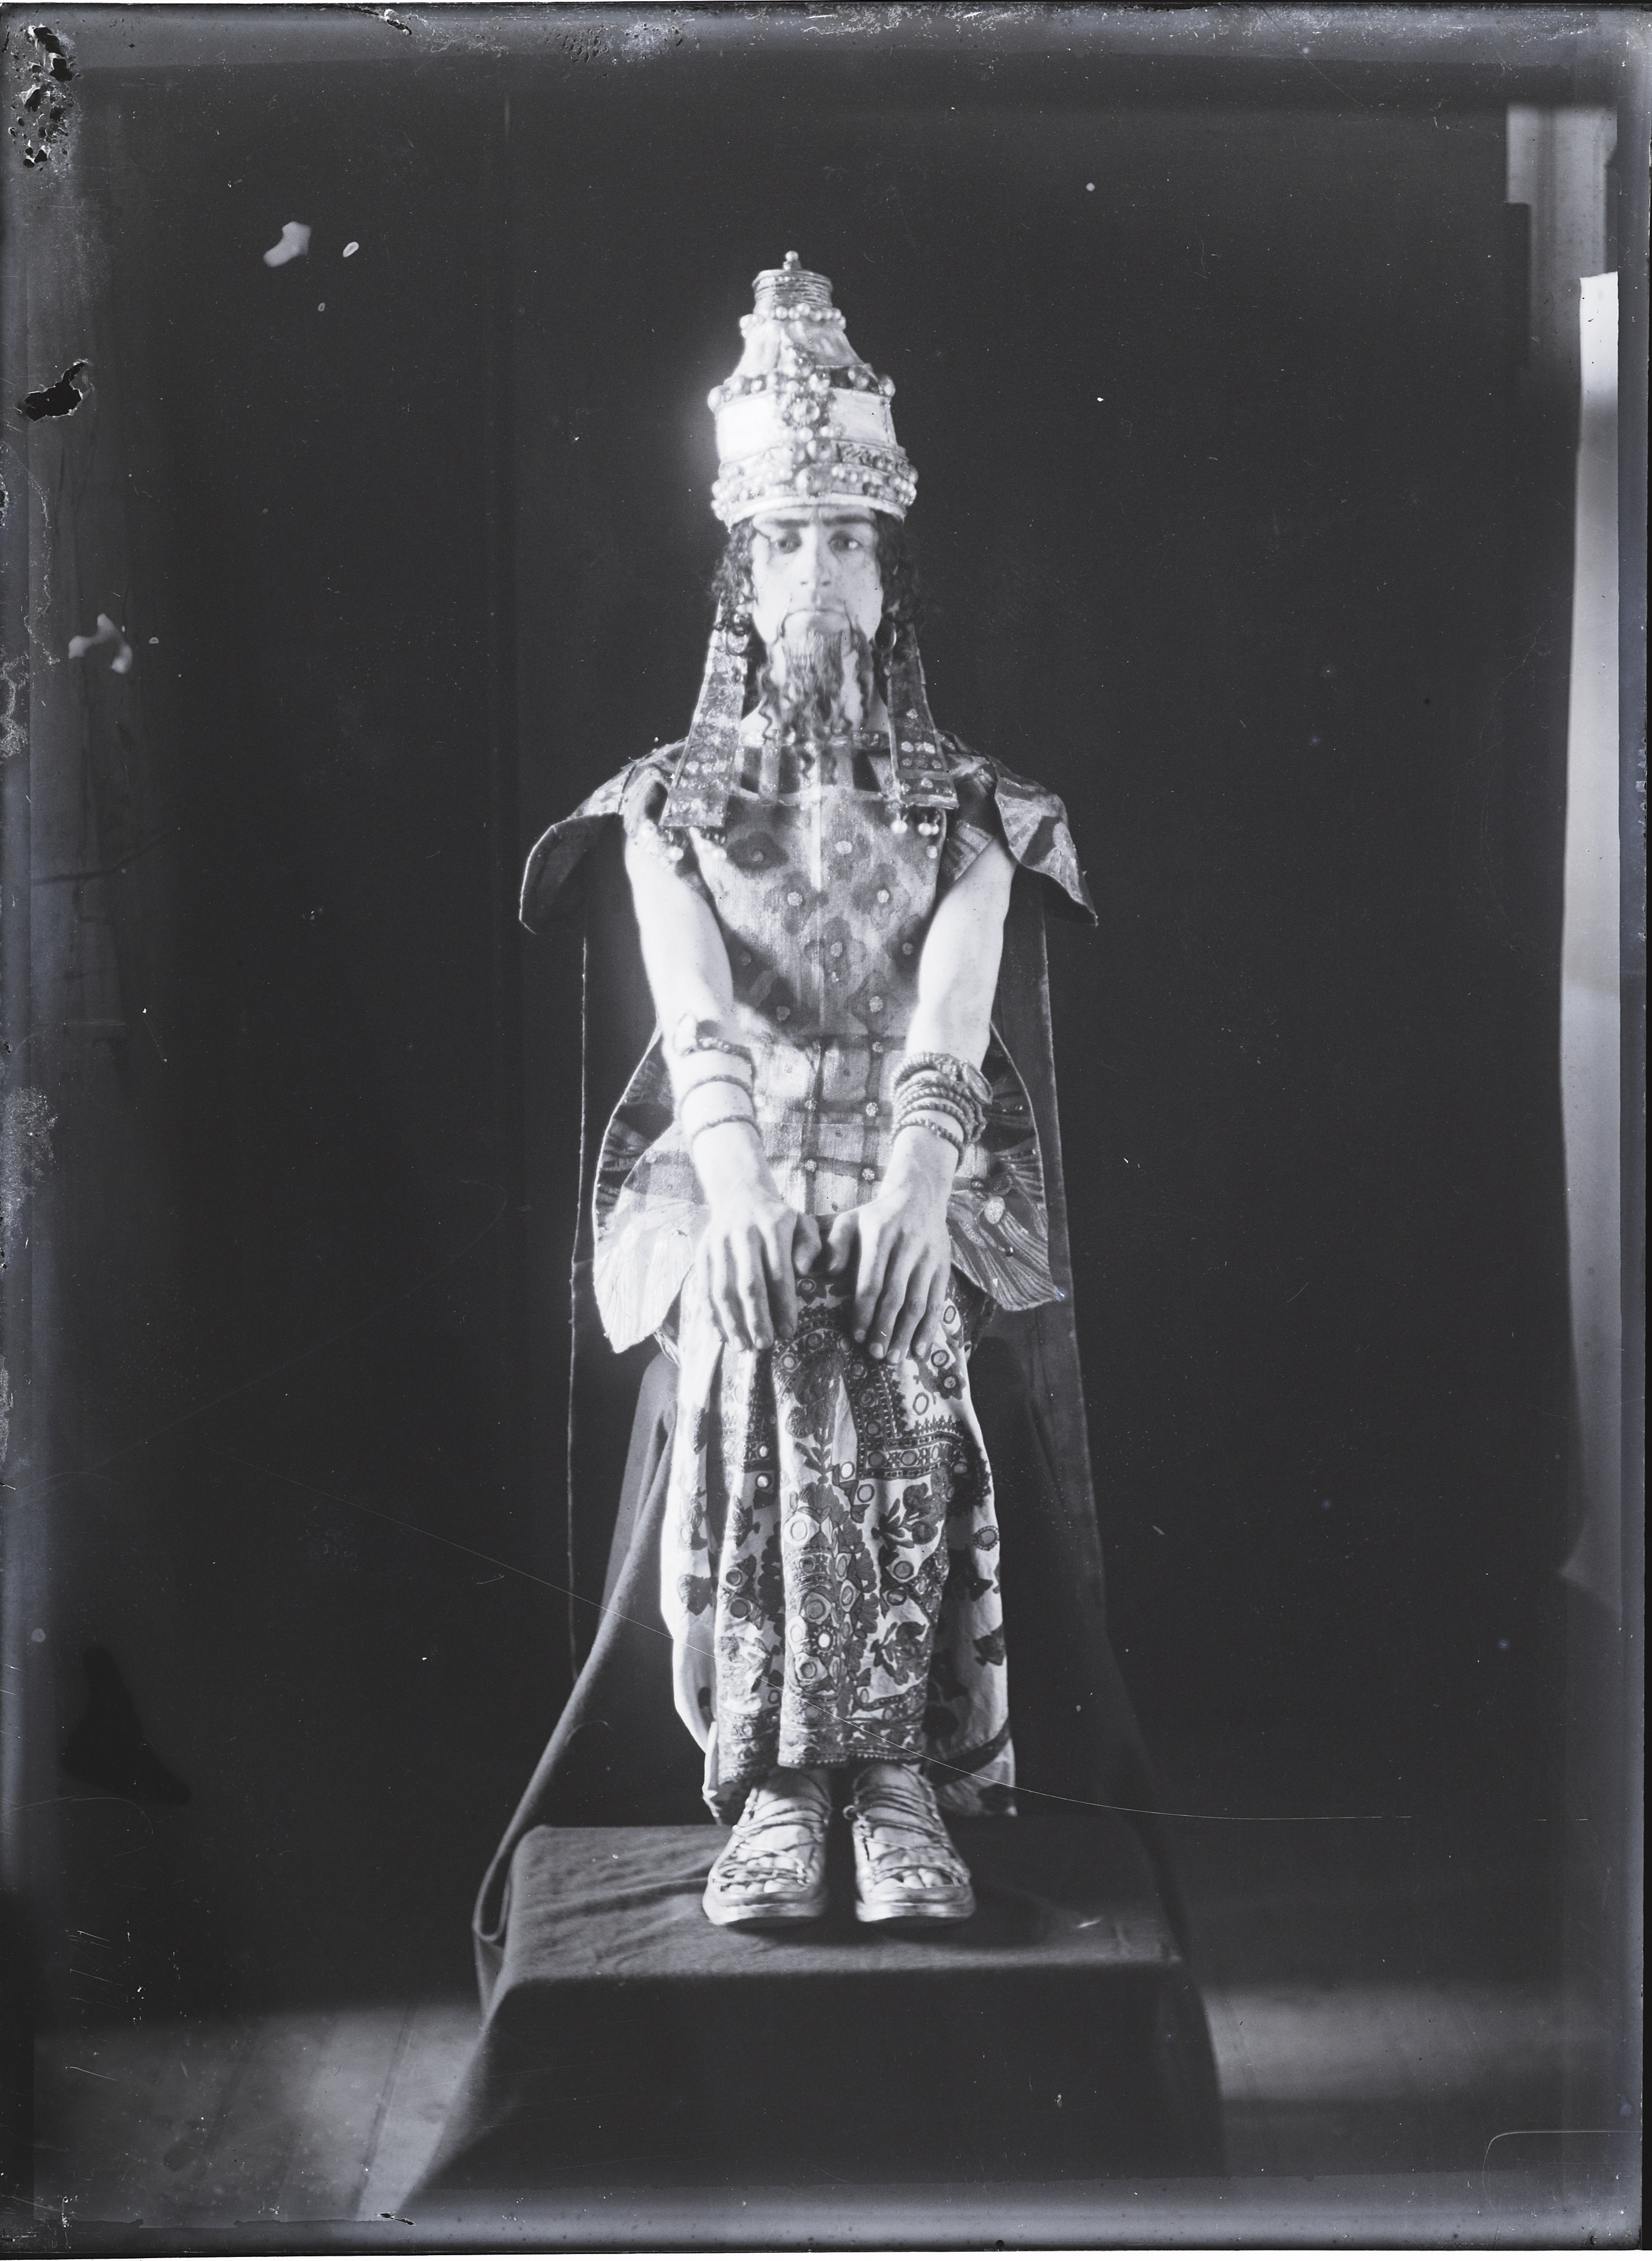 Glasgow School of Art glass plate negative featuring student in costume, early 1900s